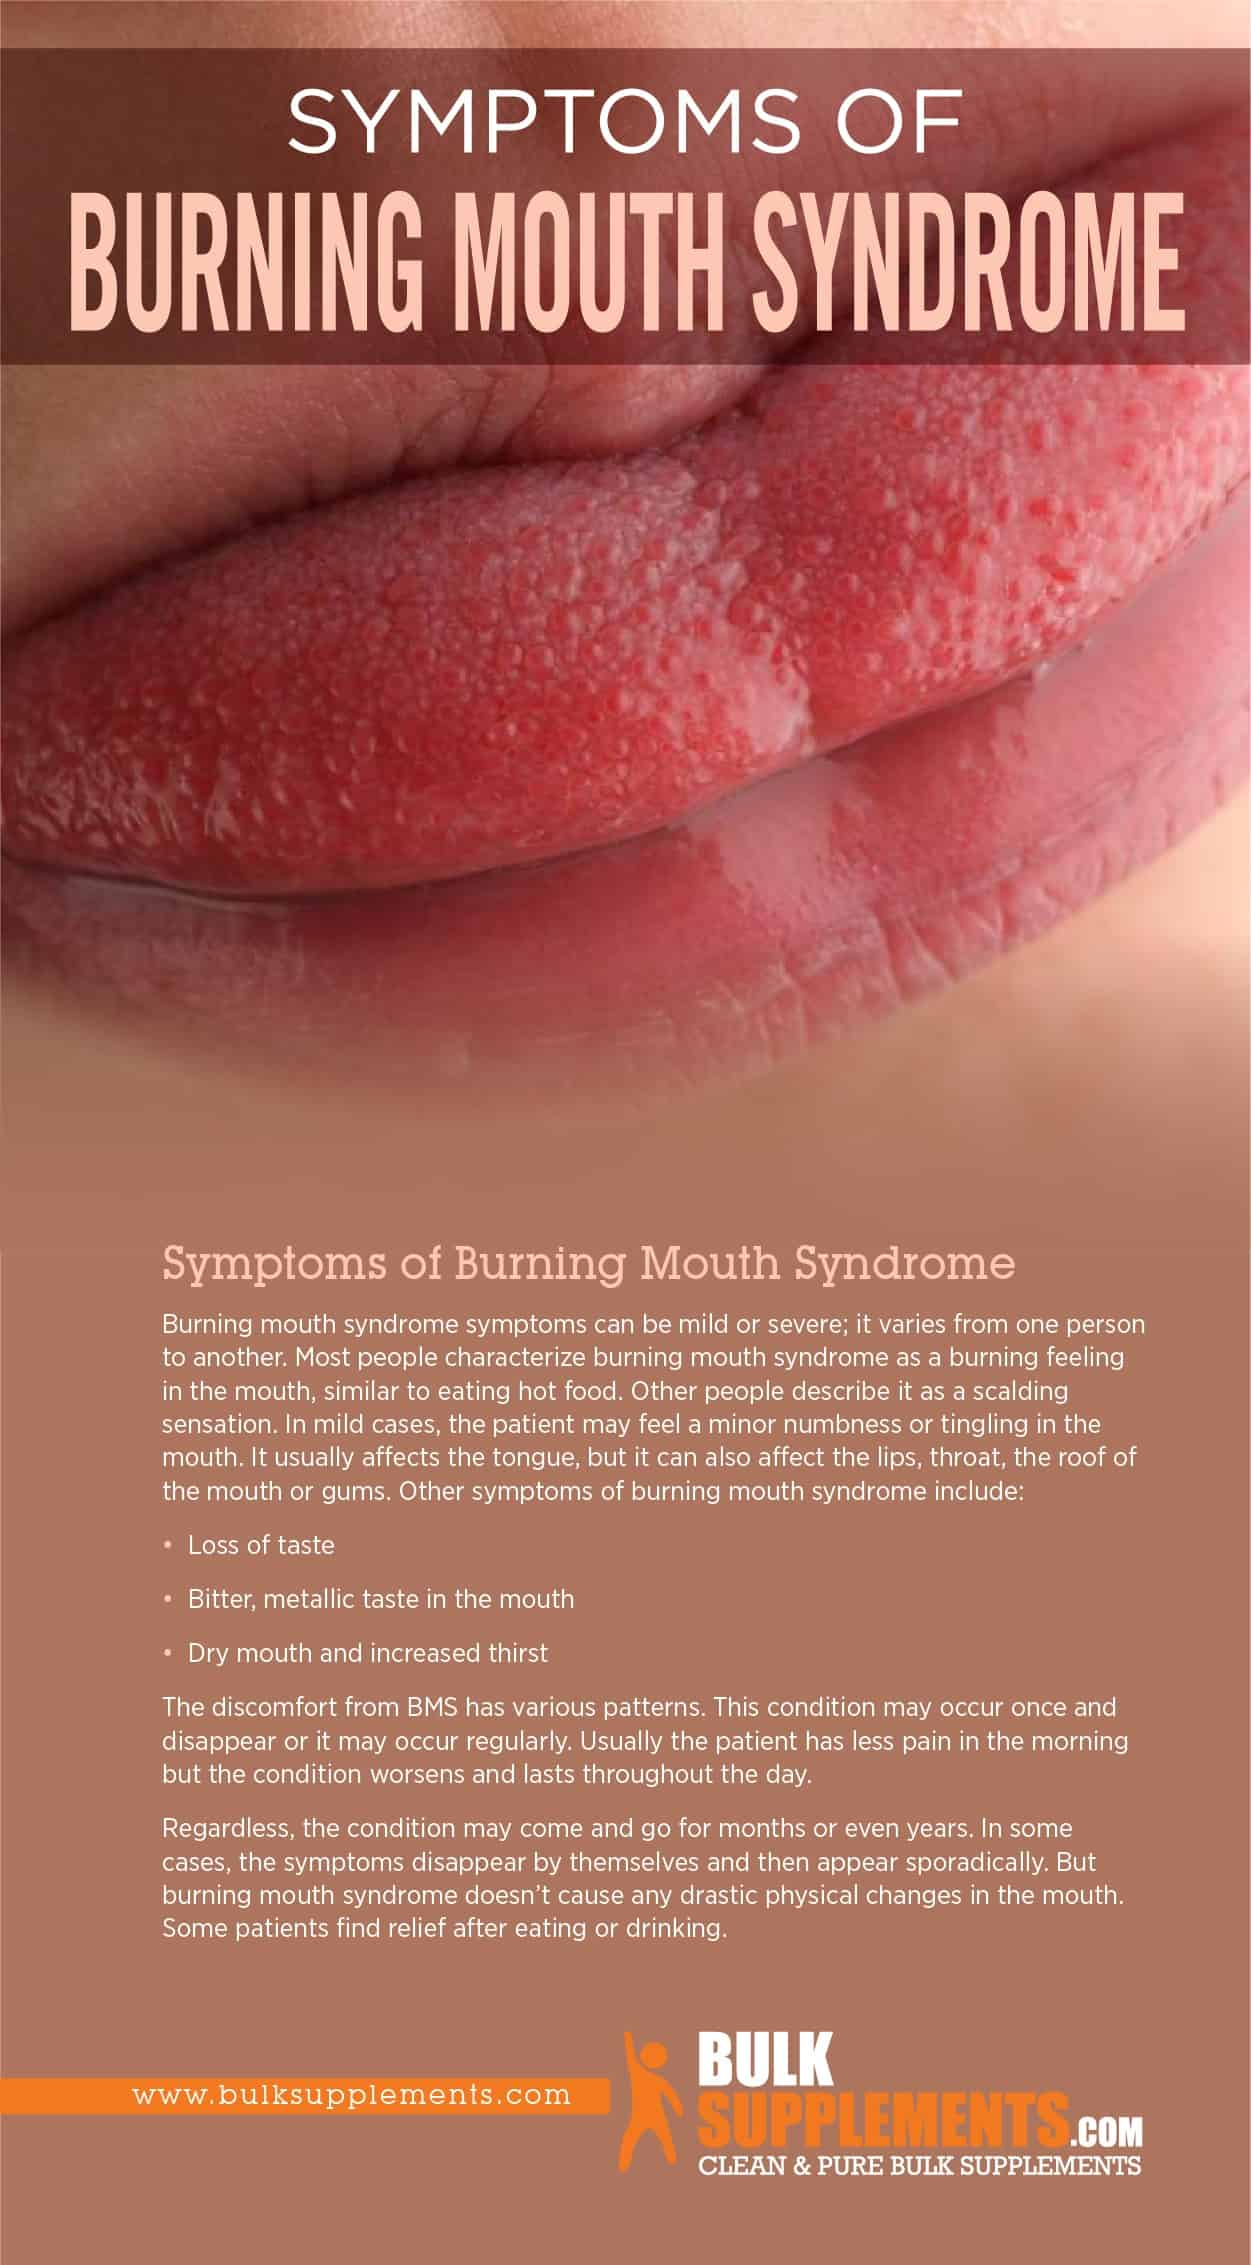 Symptoms of Burning Mouth Syndrome